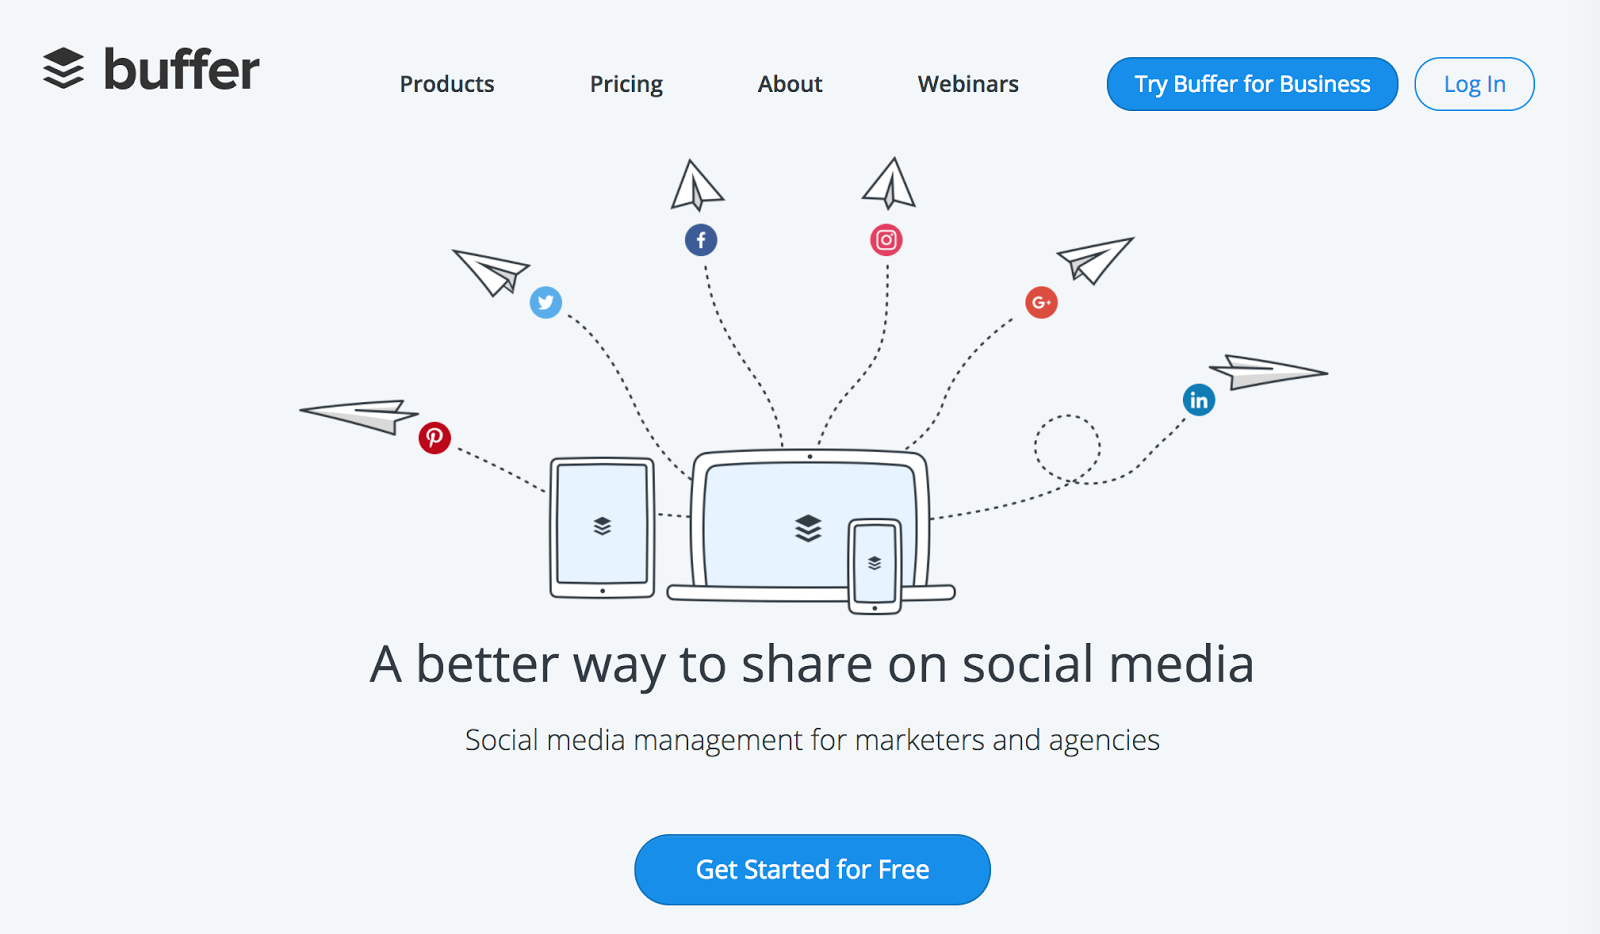 Buffer is an automation app that lets you schedule social media posts and share your content at the best possible times throughout the day for visibility and exposure.